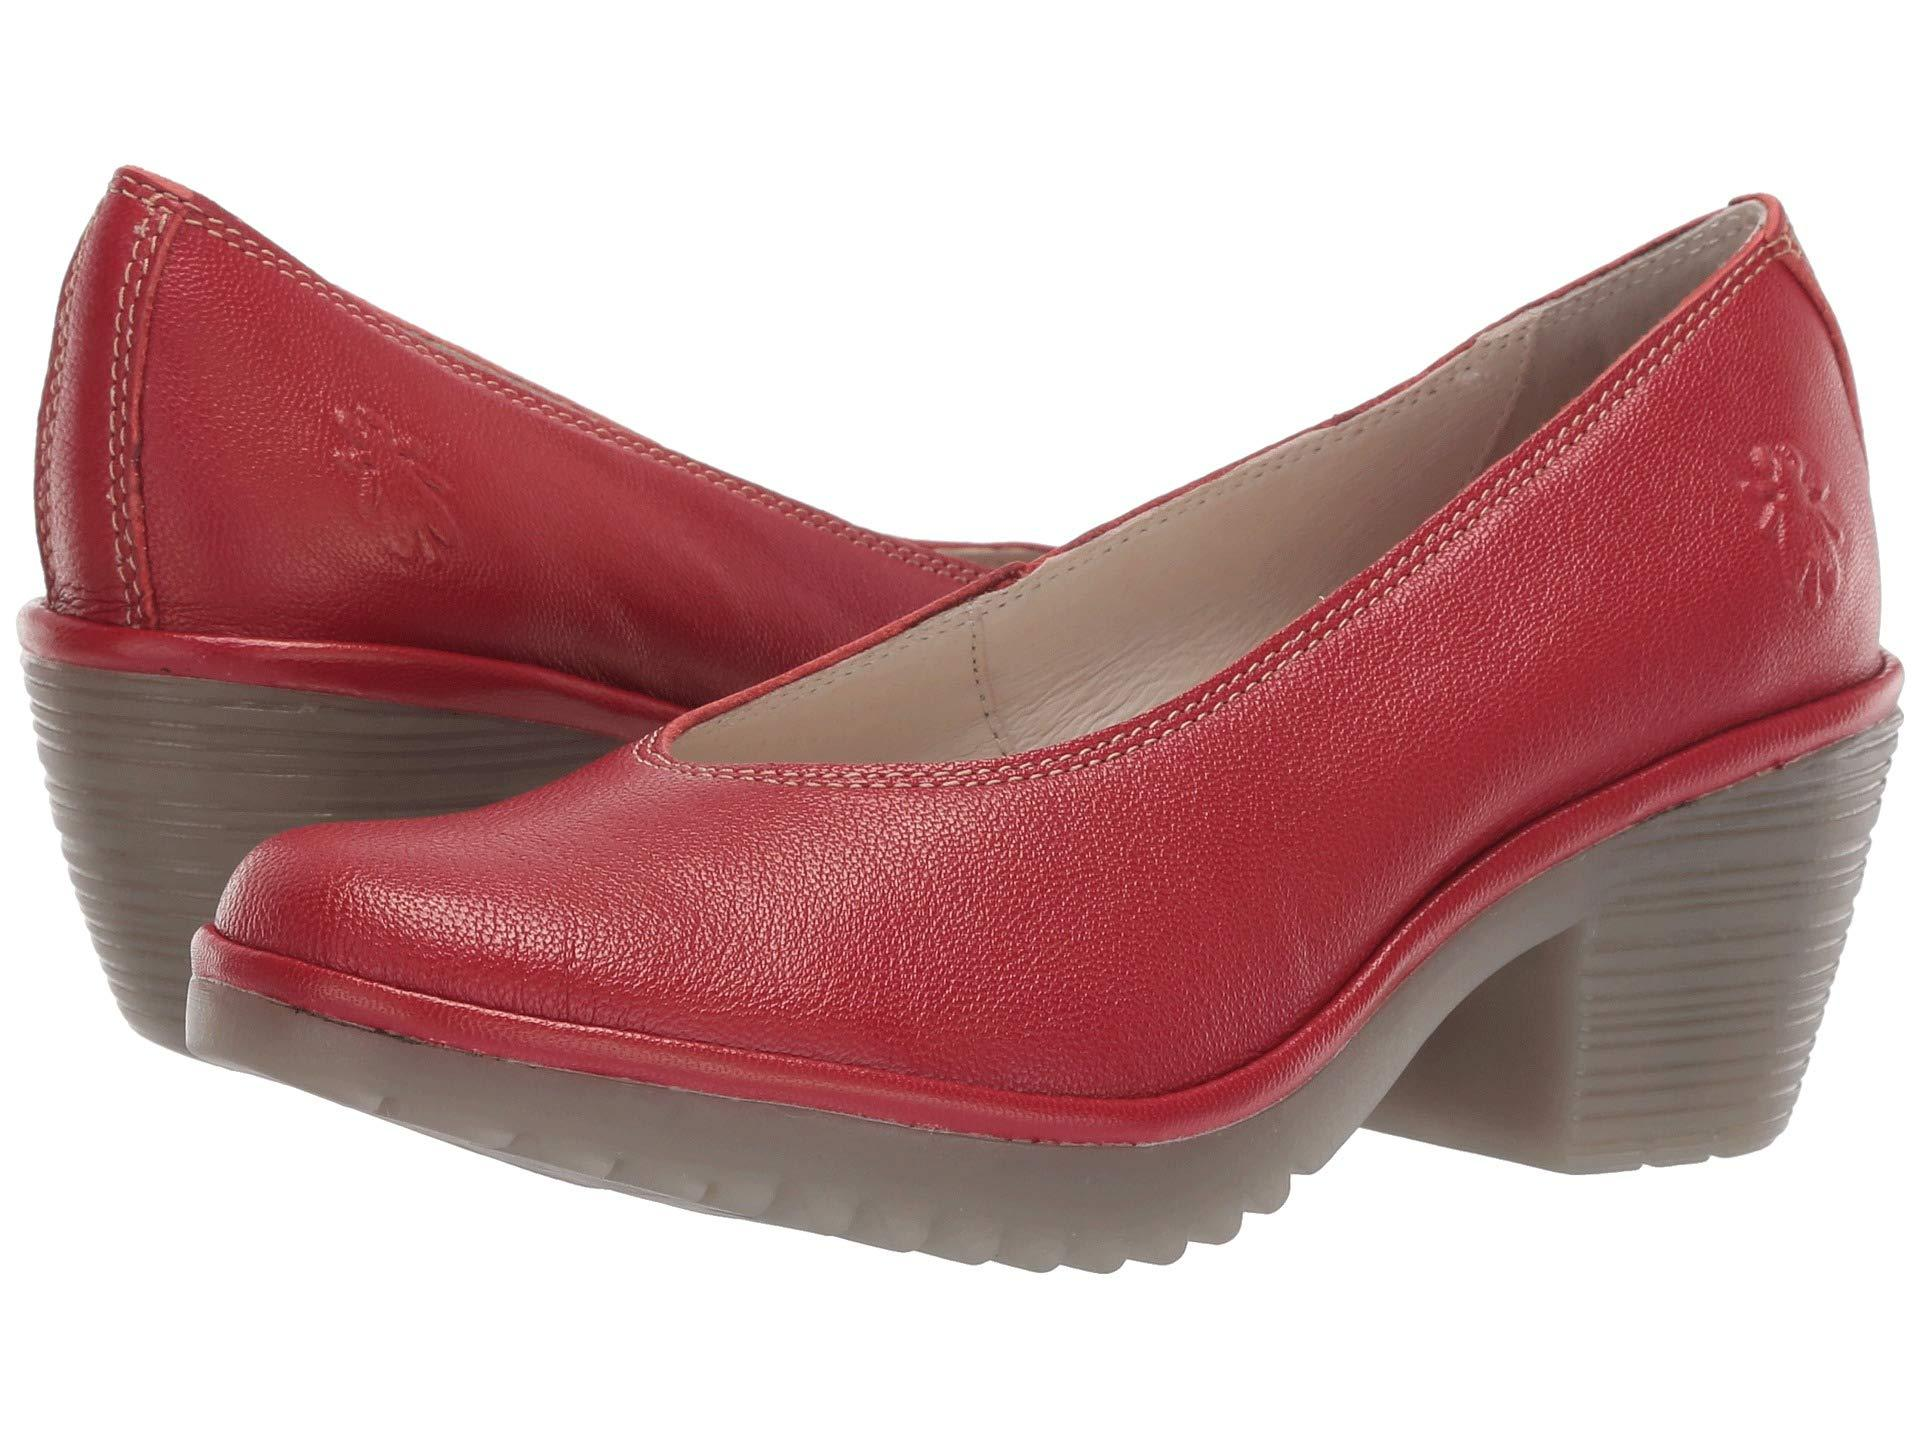 8b9548bcaff Lyst - Fly London Walo988fly (silver Borgogna) Women s Shoes in Red